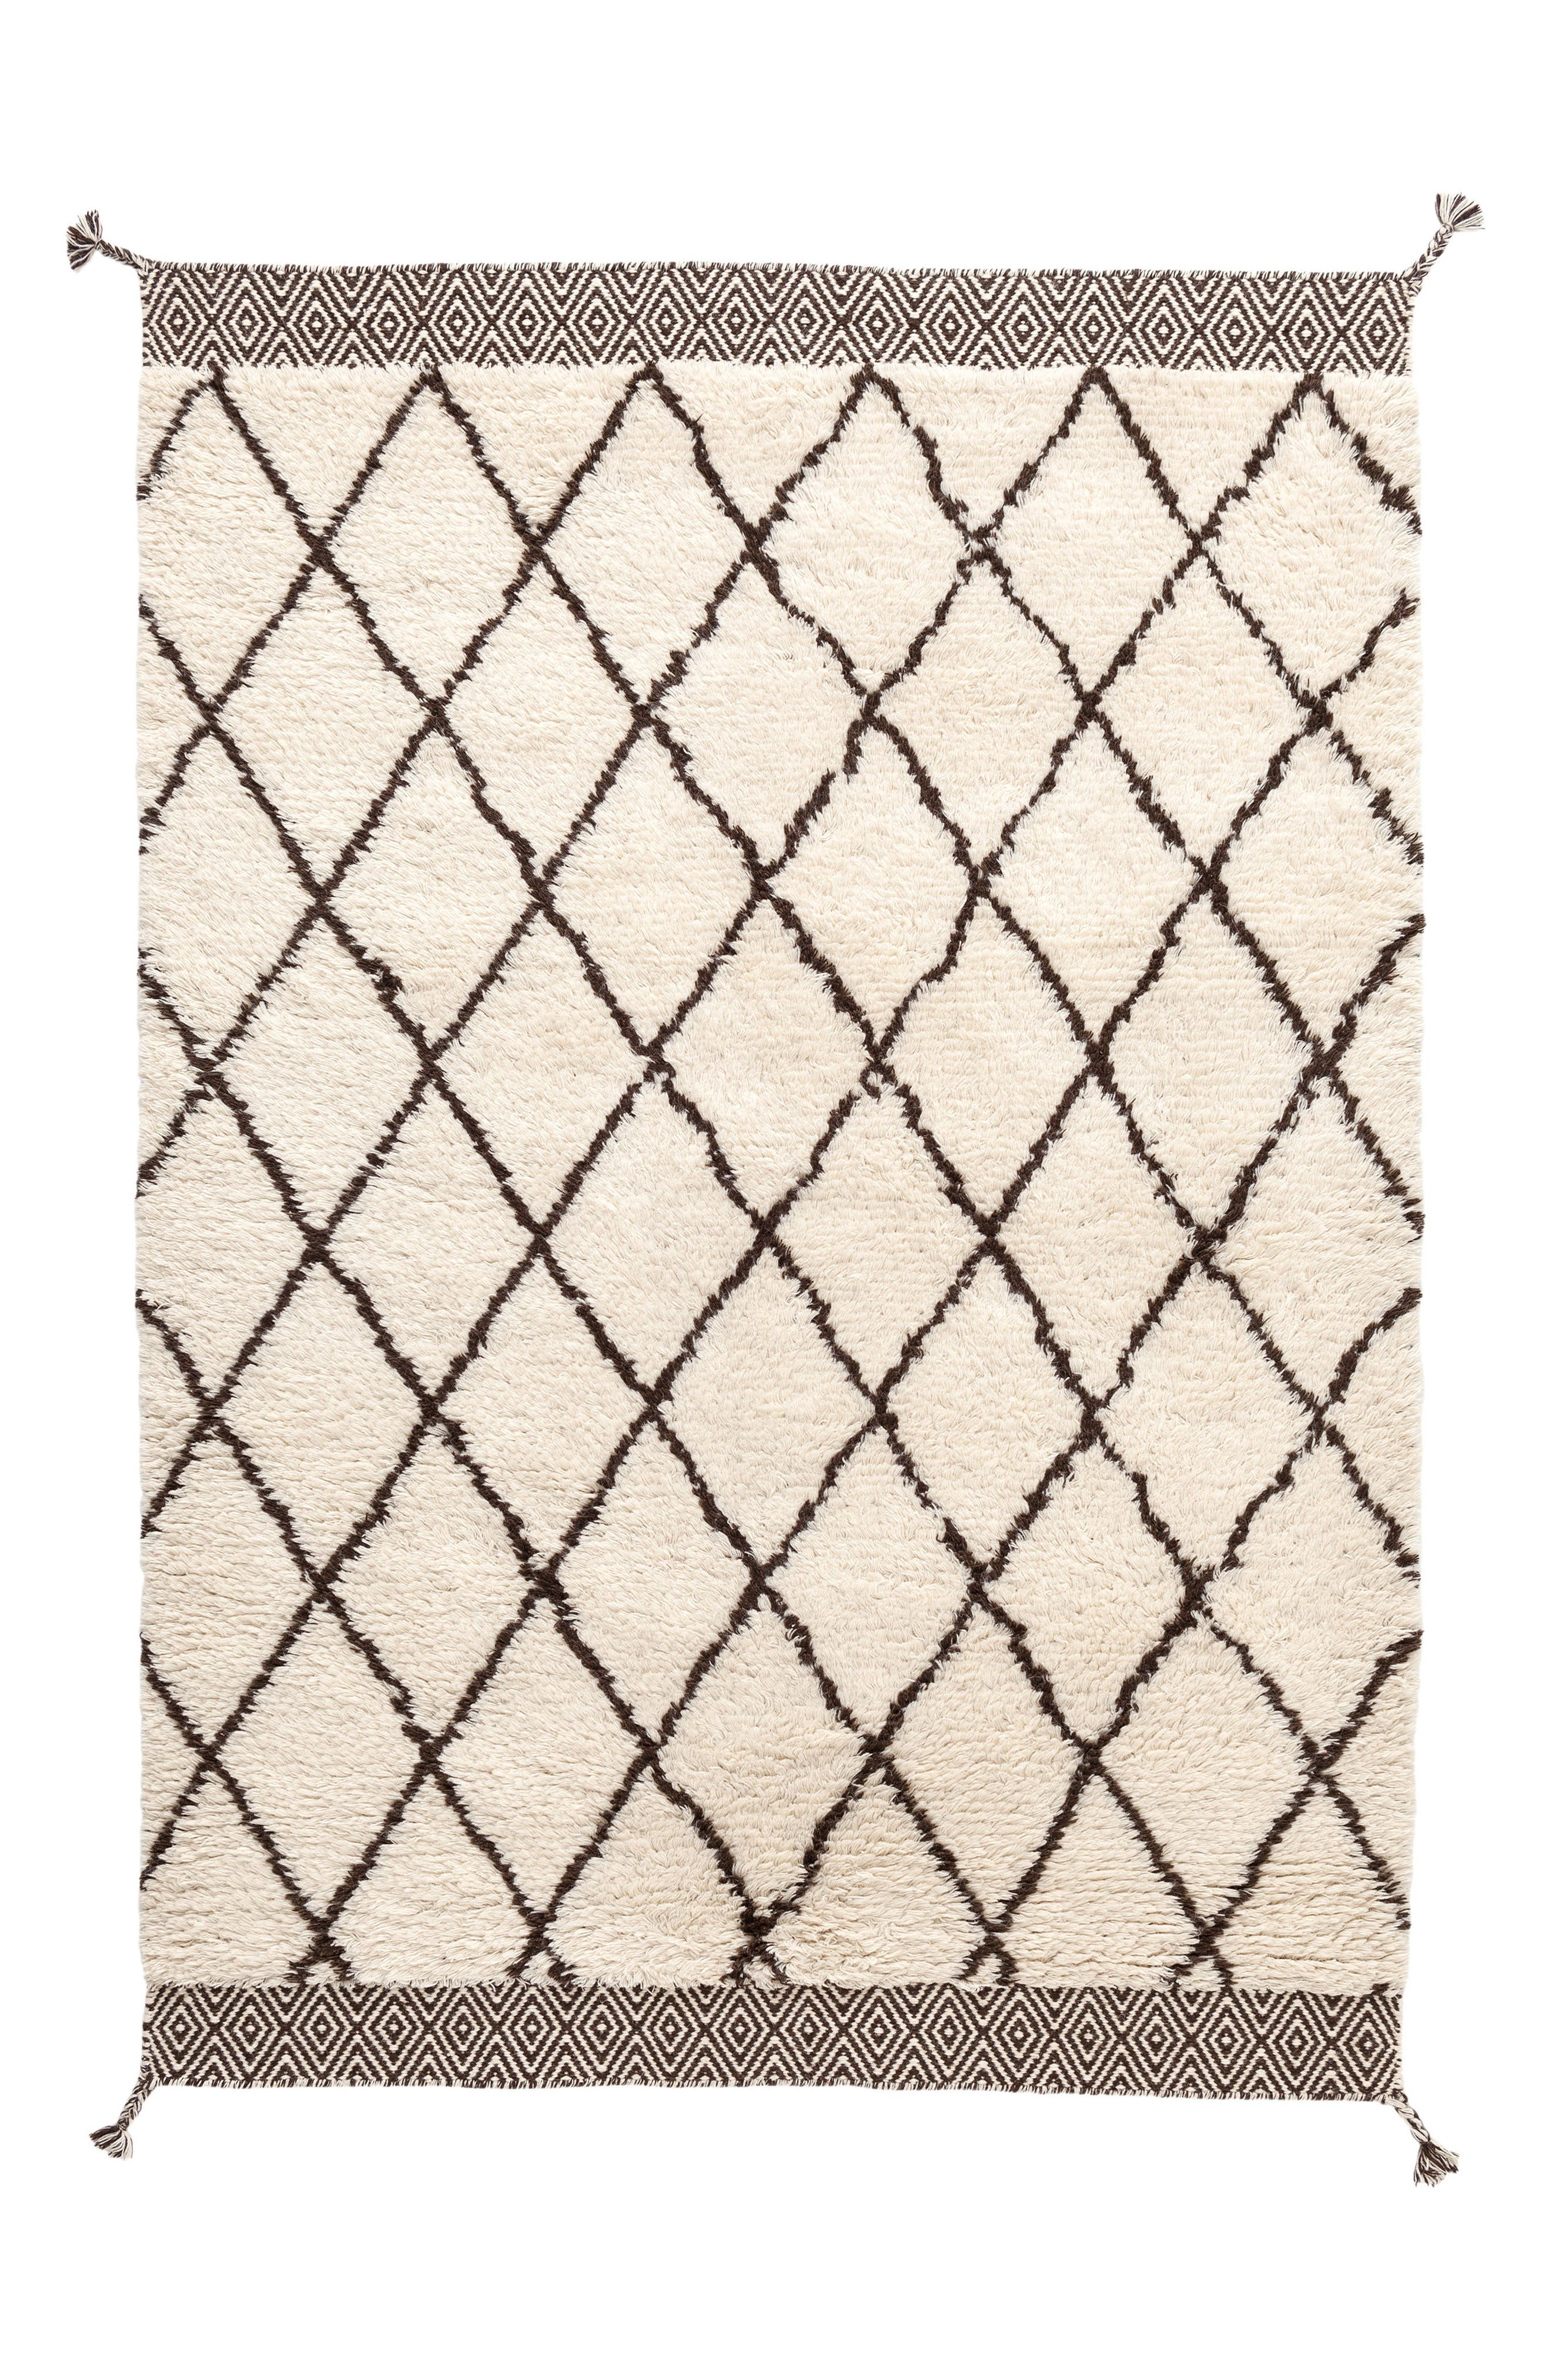 Geo Print Wool Rug,                             Main thumbnail 1, color,                             IVORY/ GREY